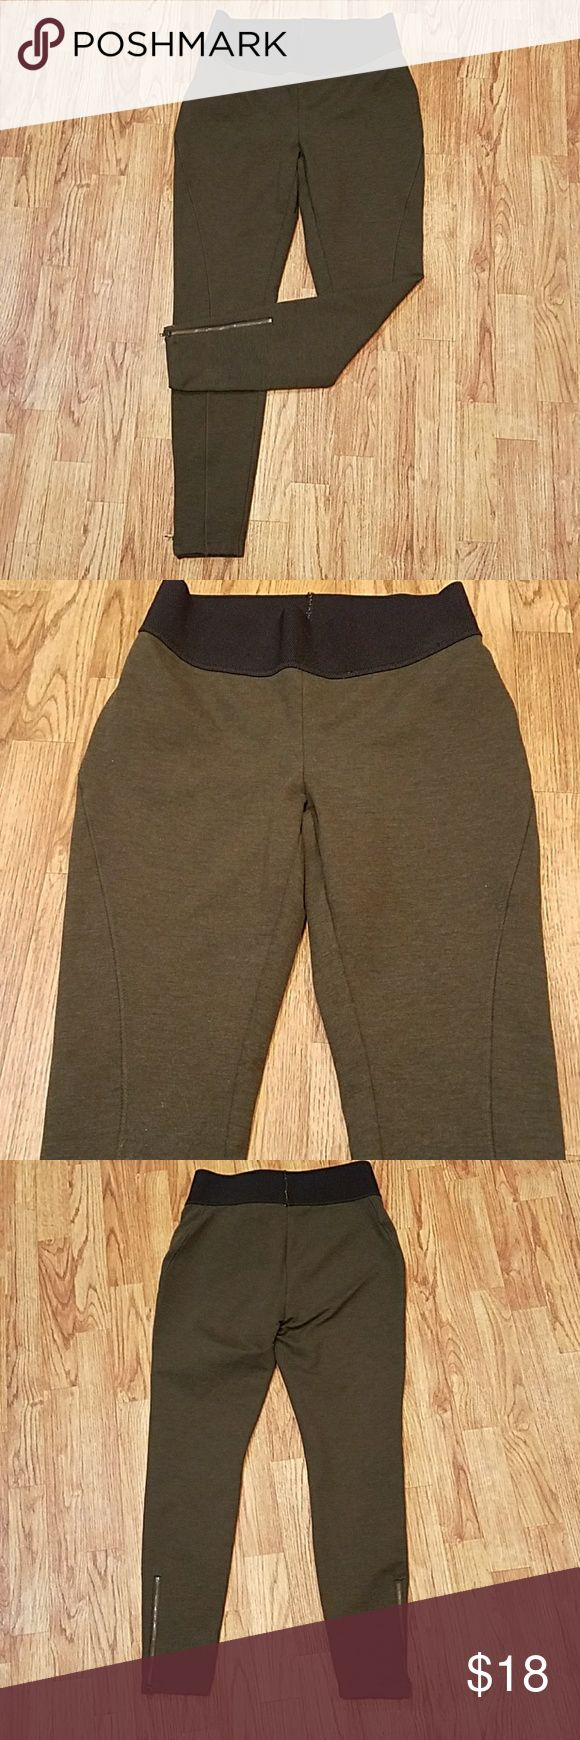 ANN TAYLOR LOFT Olive Thick Leggings Ankle Zip Olive/army green color. Thick Leggings with zipper ankles. Some light pilling in areas- most noticable on one hip pictured. Very comfortable, yet stylish. Stretchy. Thick black stretchy wasit band. Stitching detail on the front. LOFT Pants Leggings